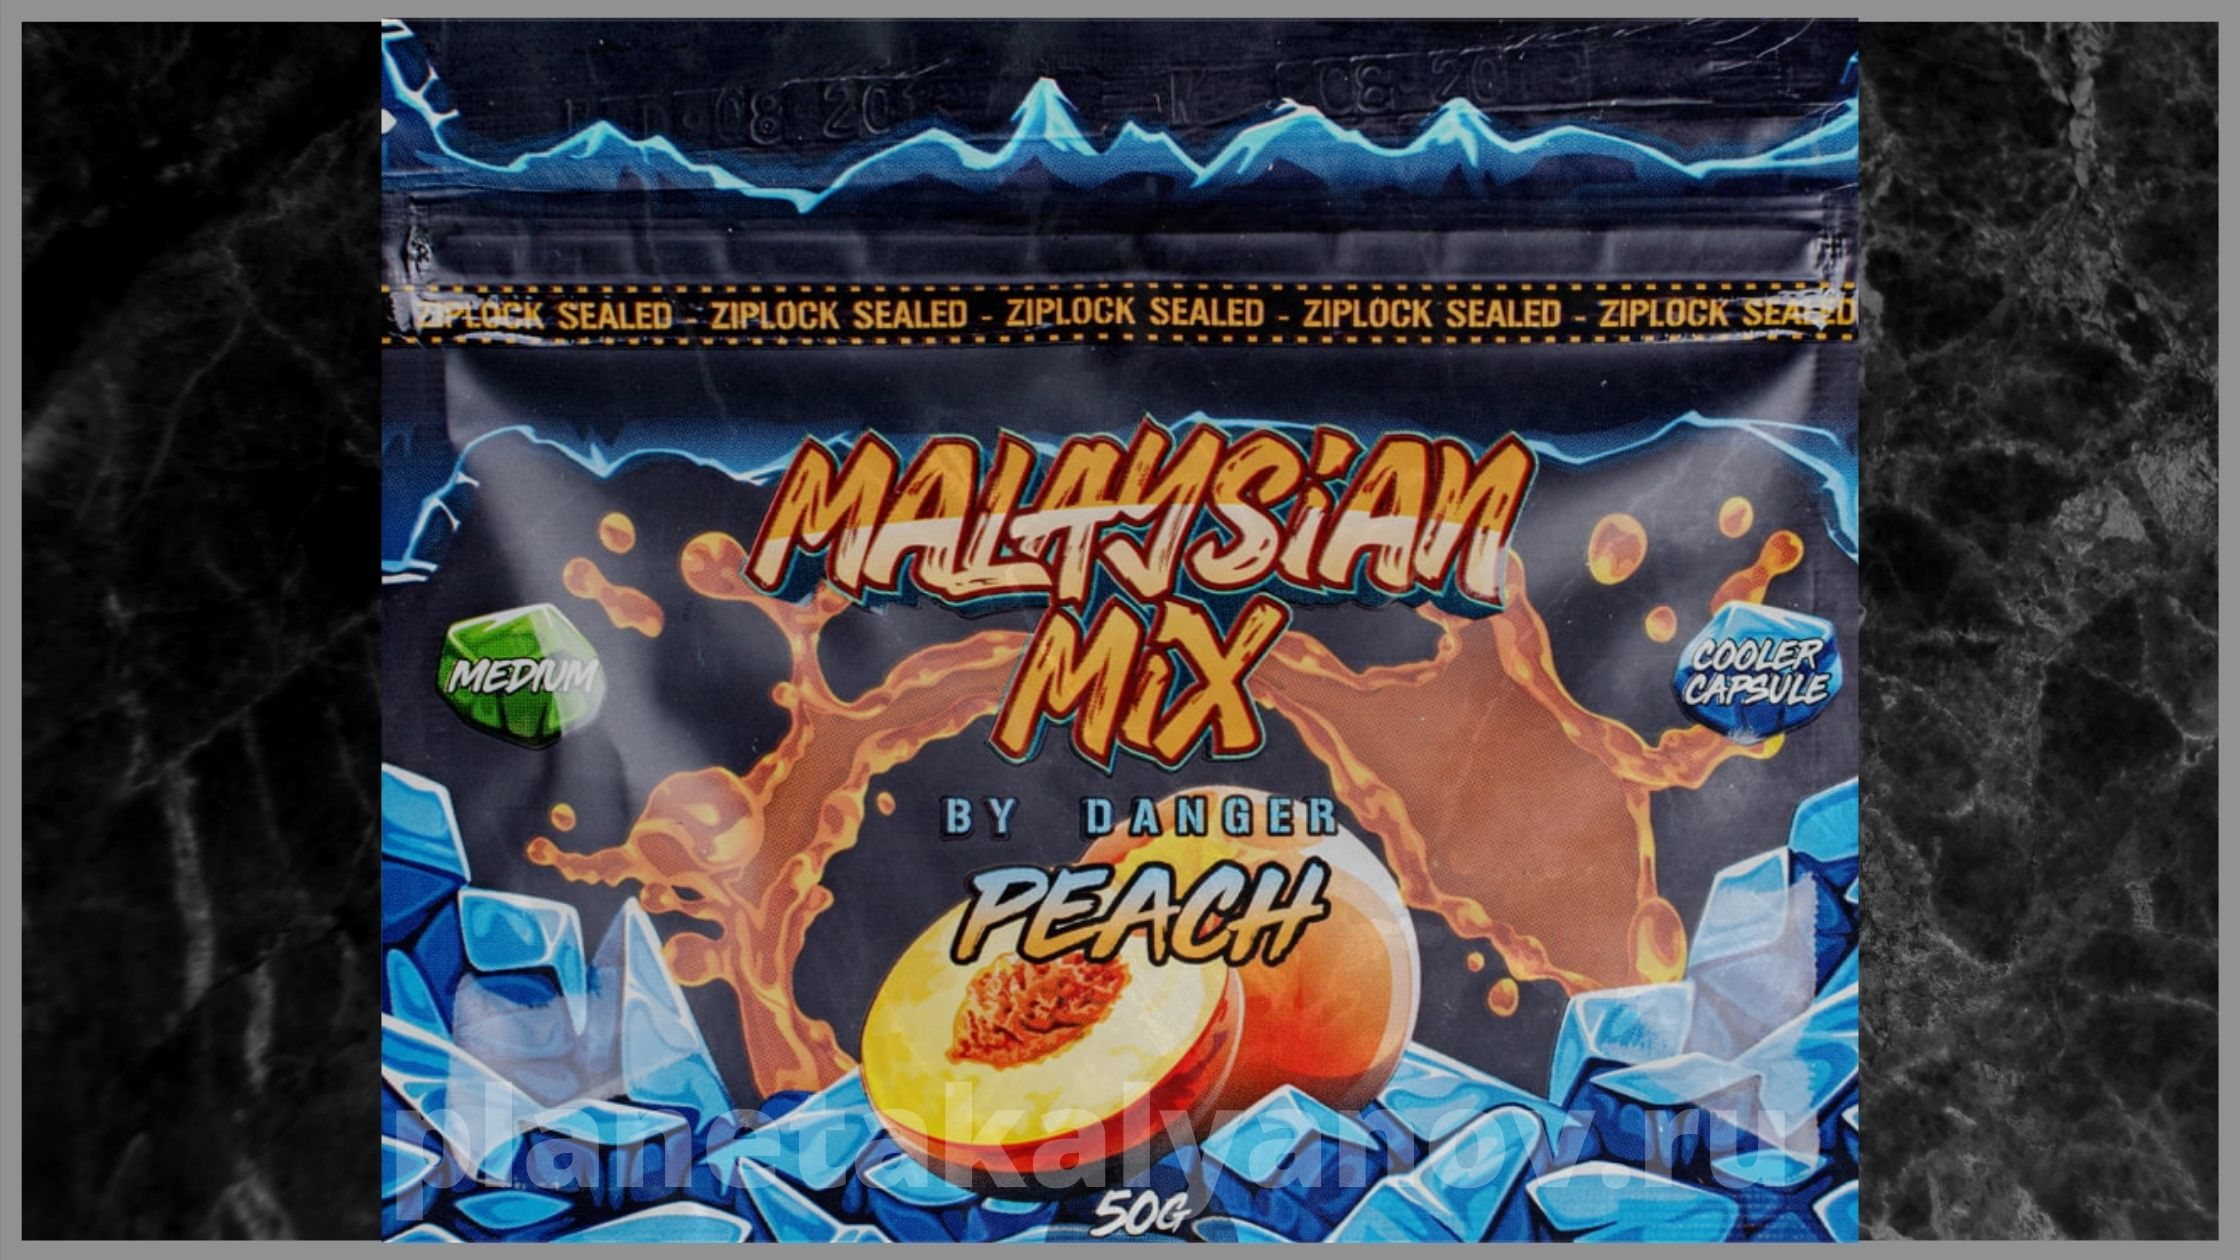 Malaysian Mix by Danger Peach